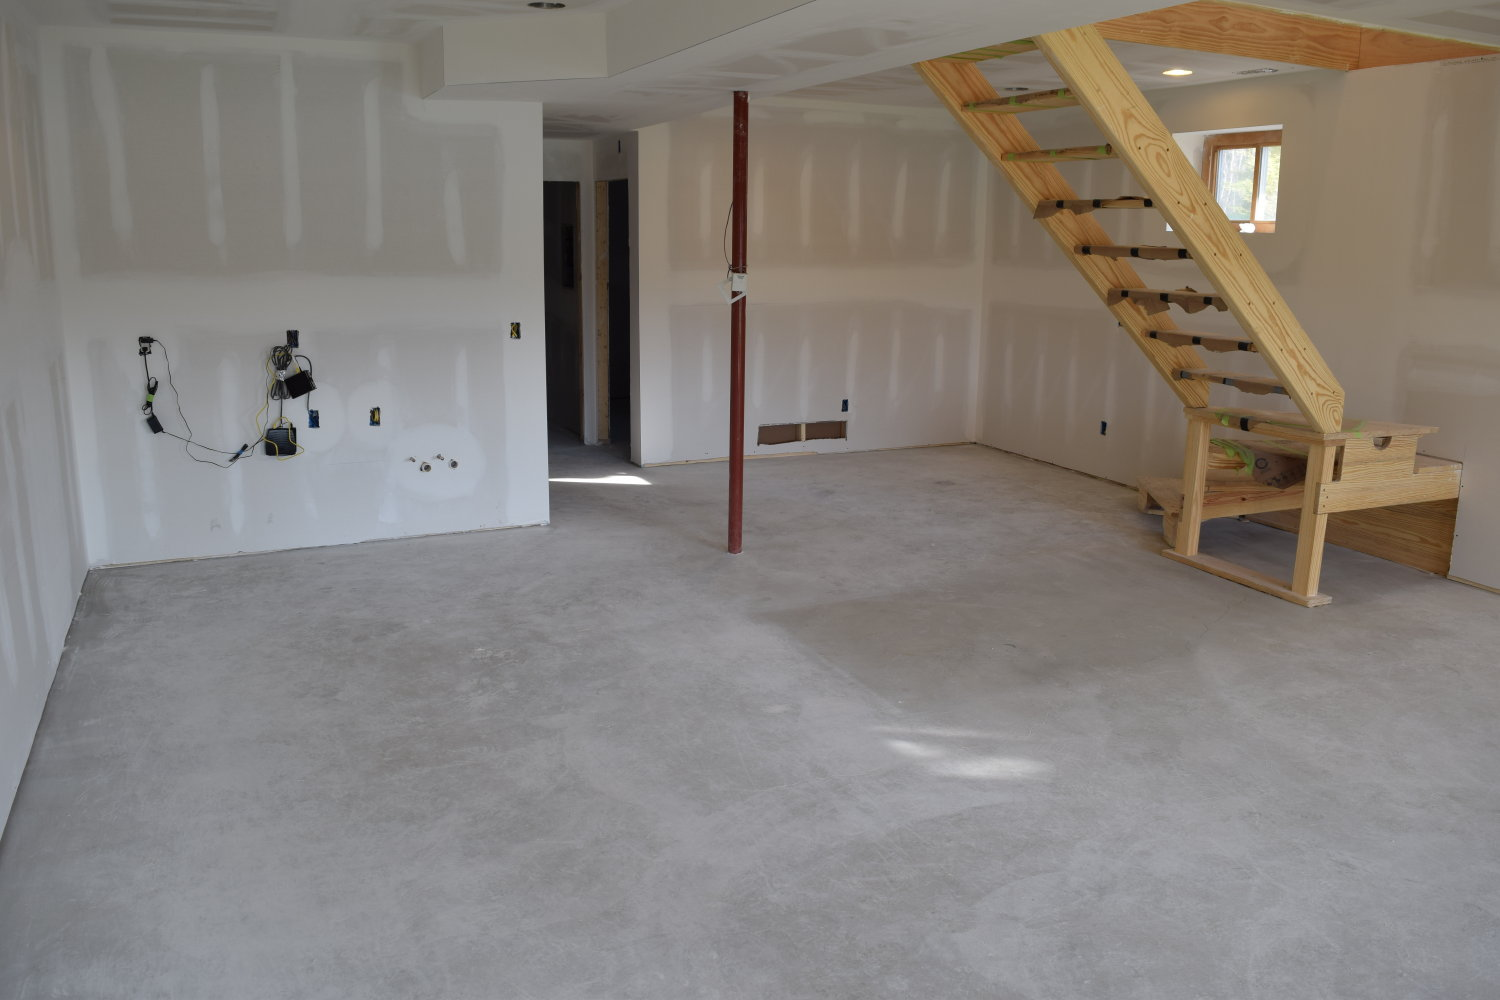 This new basement concrete floor looks to be pretty clean.  But the rectangular area under the stairs where drywall sat prior to installation shows how much work really needs to be done to clean this floor.